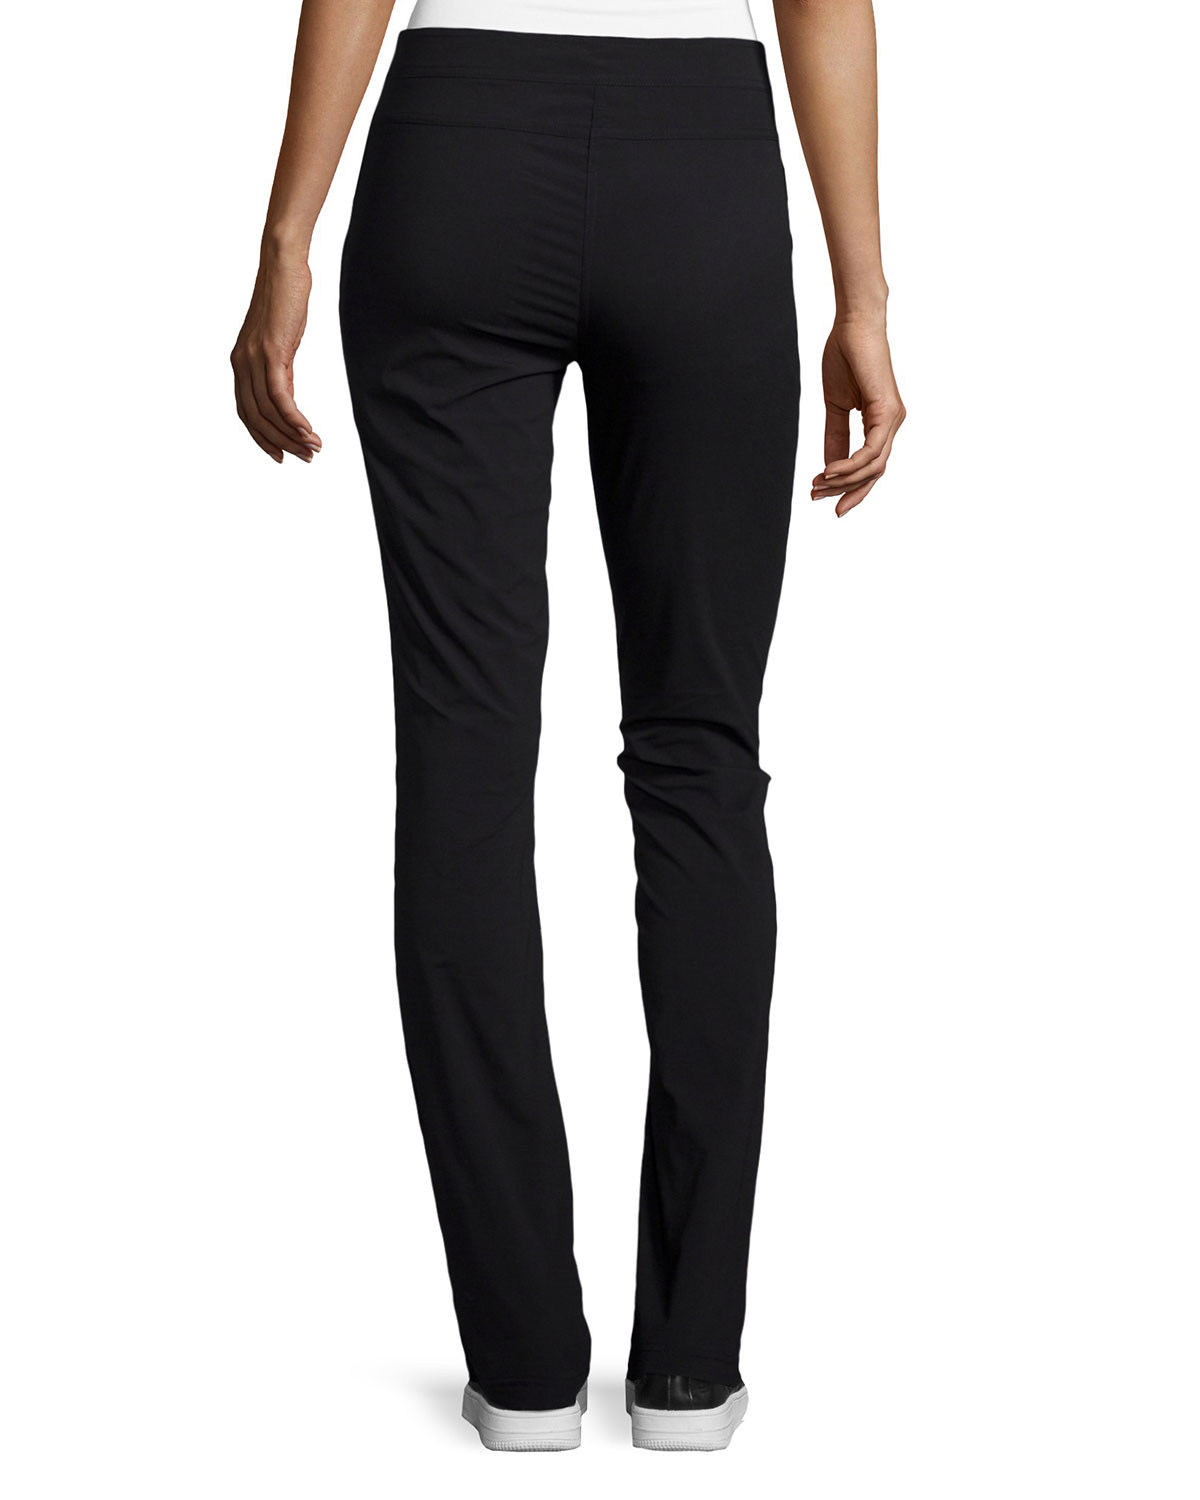 Lyst - Anatomie O-ring Flare-leg Pants in Black